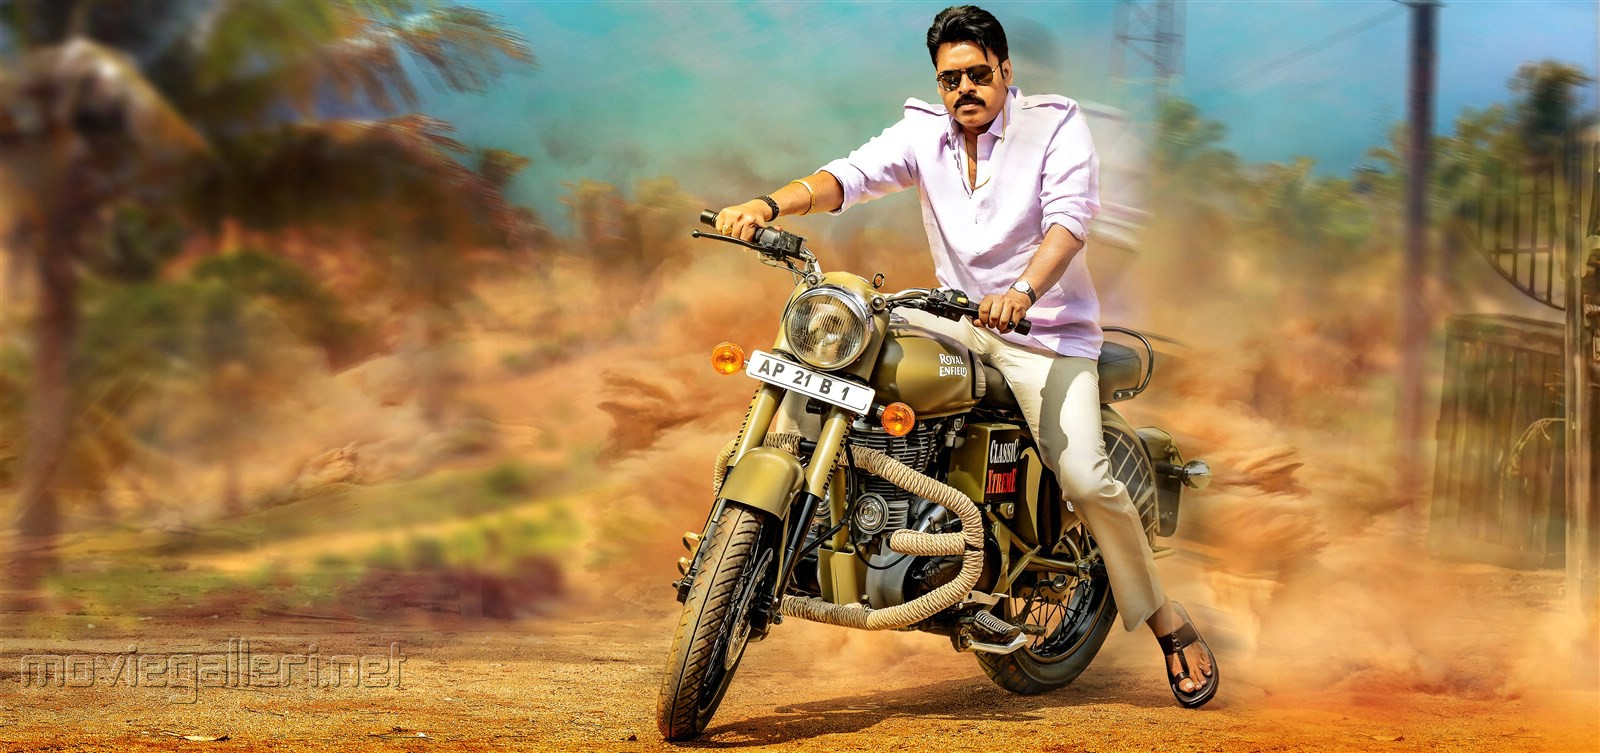 pawan kalyan katamarayudu new wallpaper | new movie posters